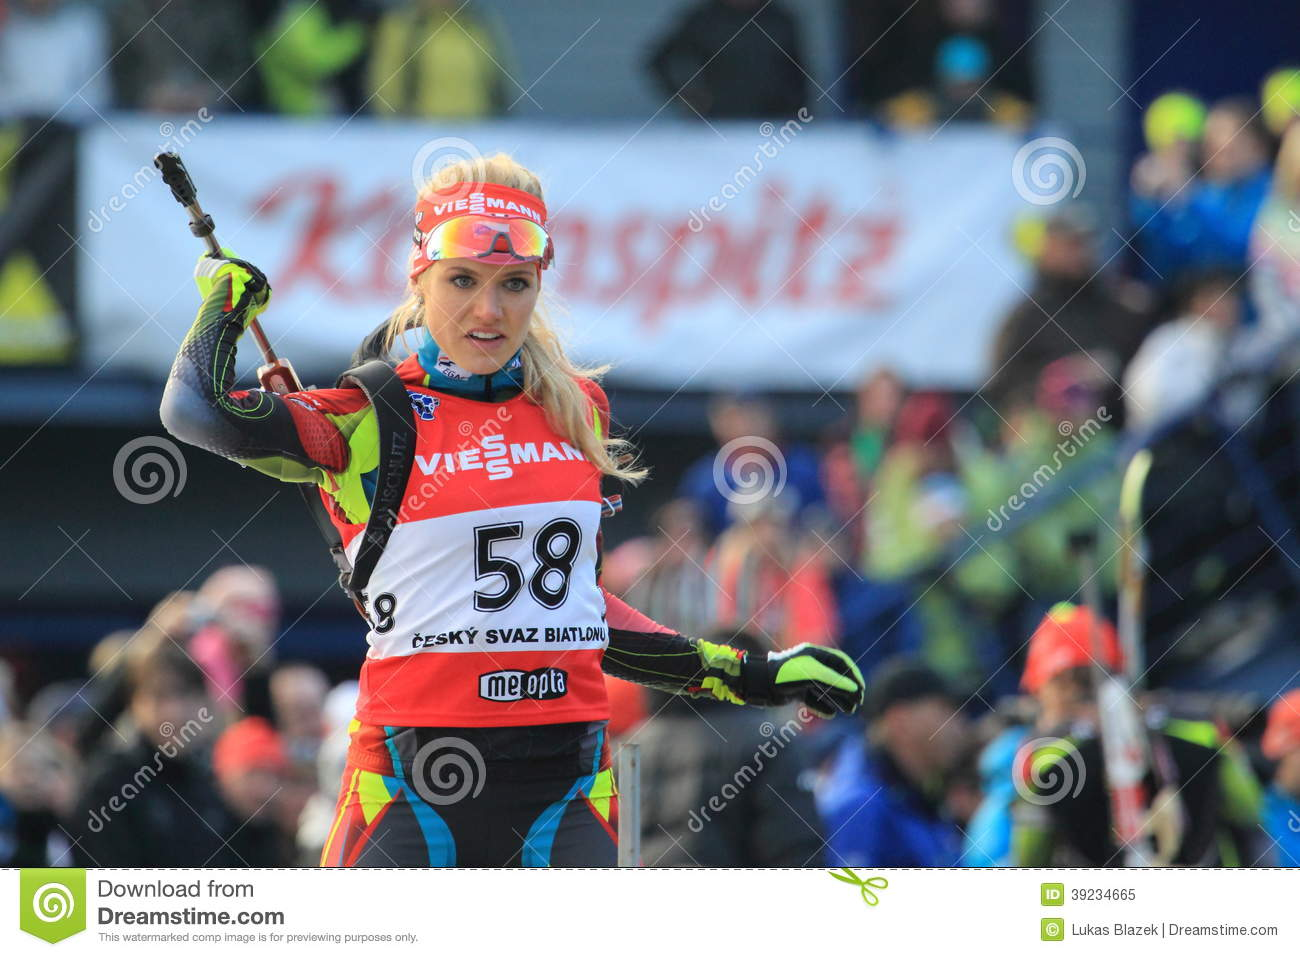 Biathlonist Gabriela Sukalova: photo, achievements